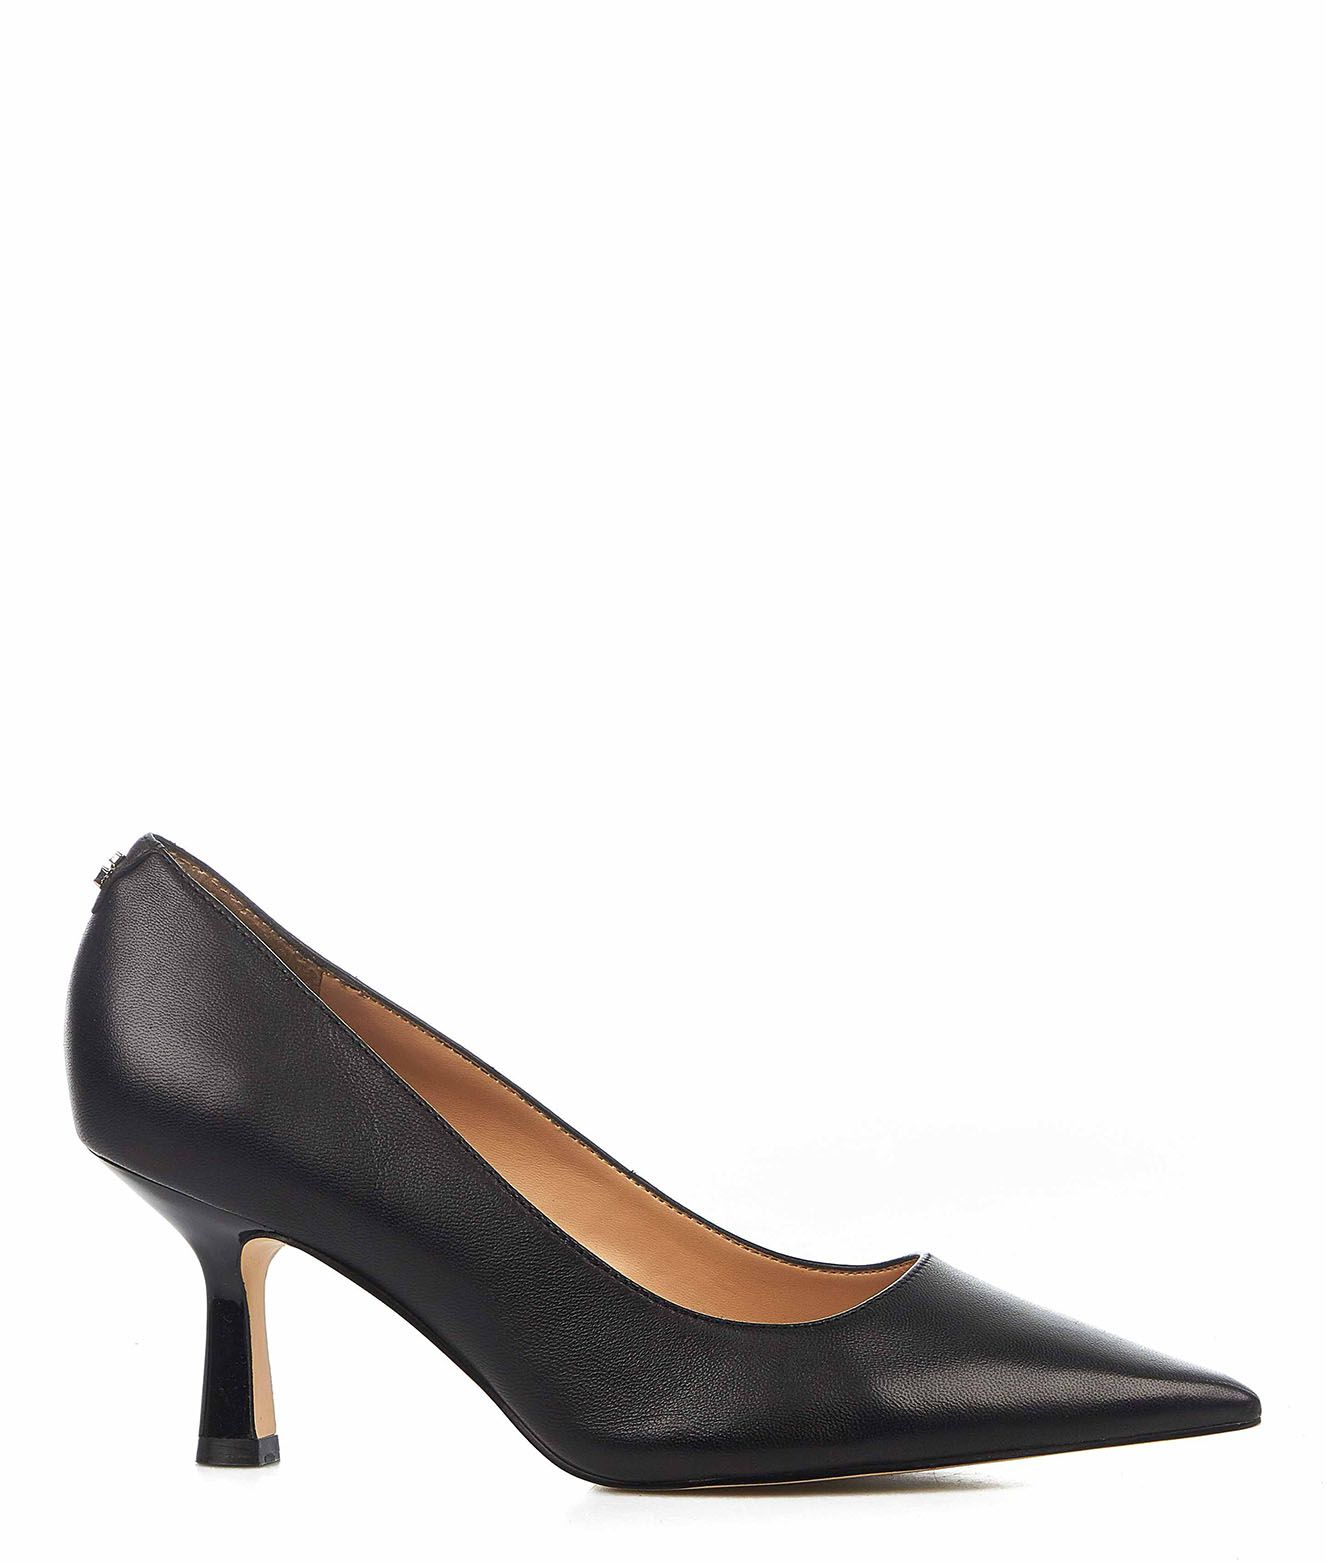 Guess Leathers PUMPS IN GENUINE LEATHER